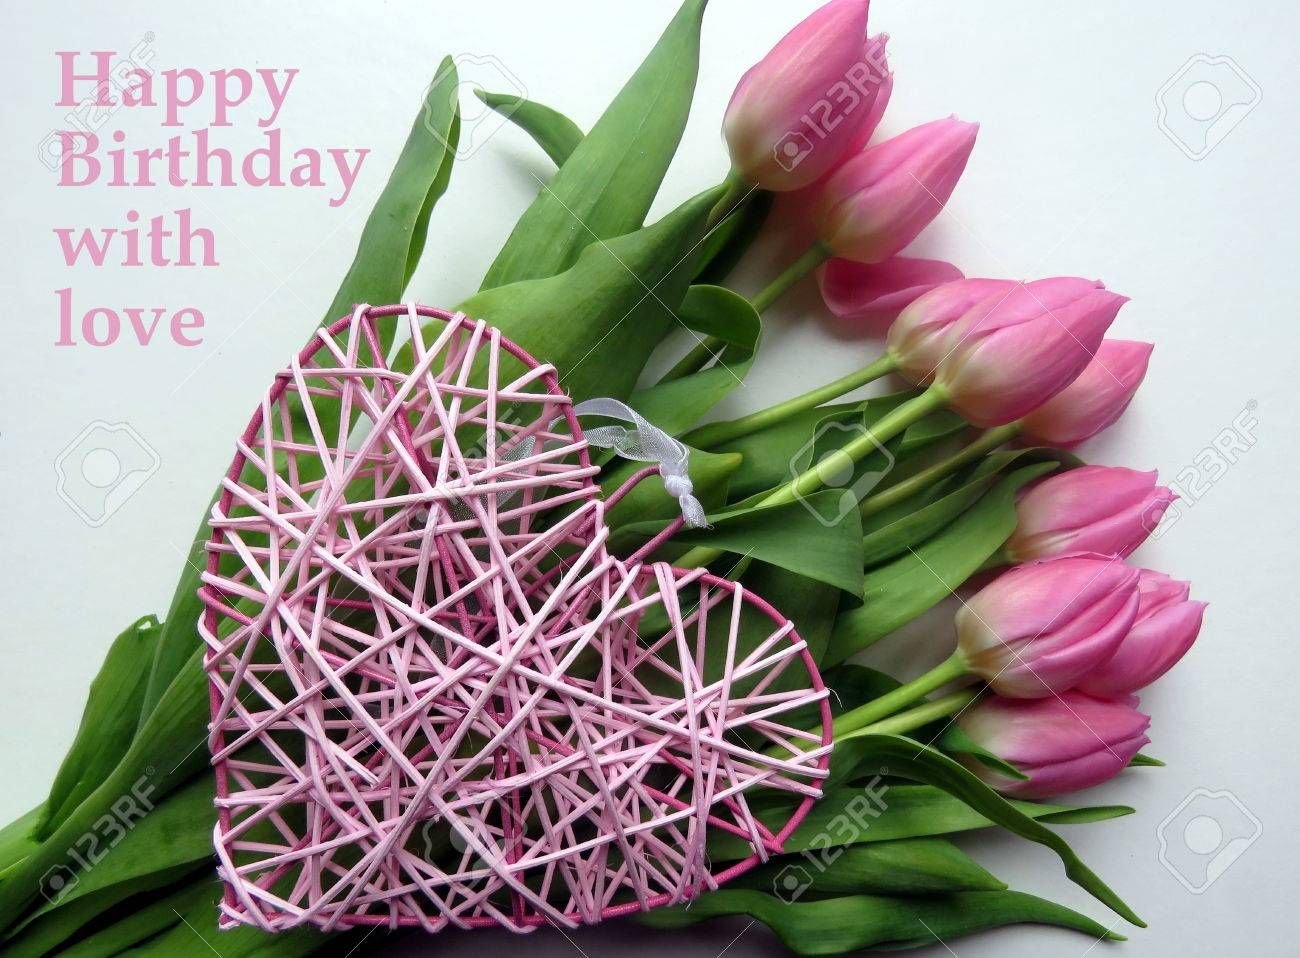 Happy birthday with love in pink text with bunch of pink tulips happy birthday with love in pink text with bunch of pink tulips and pink izmirmasajfo